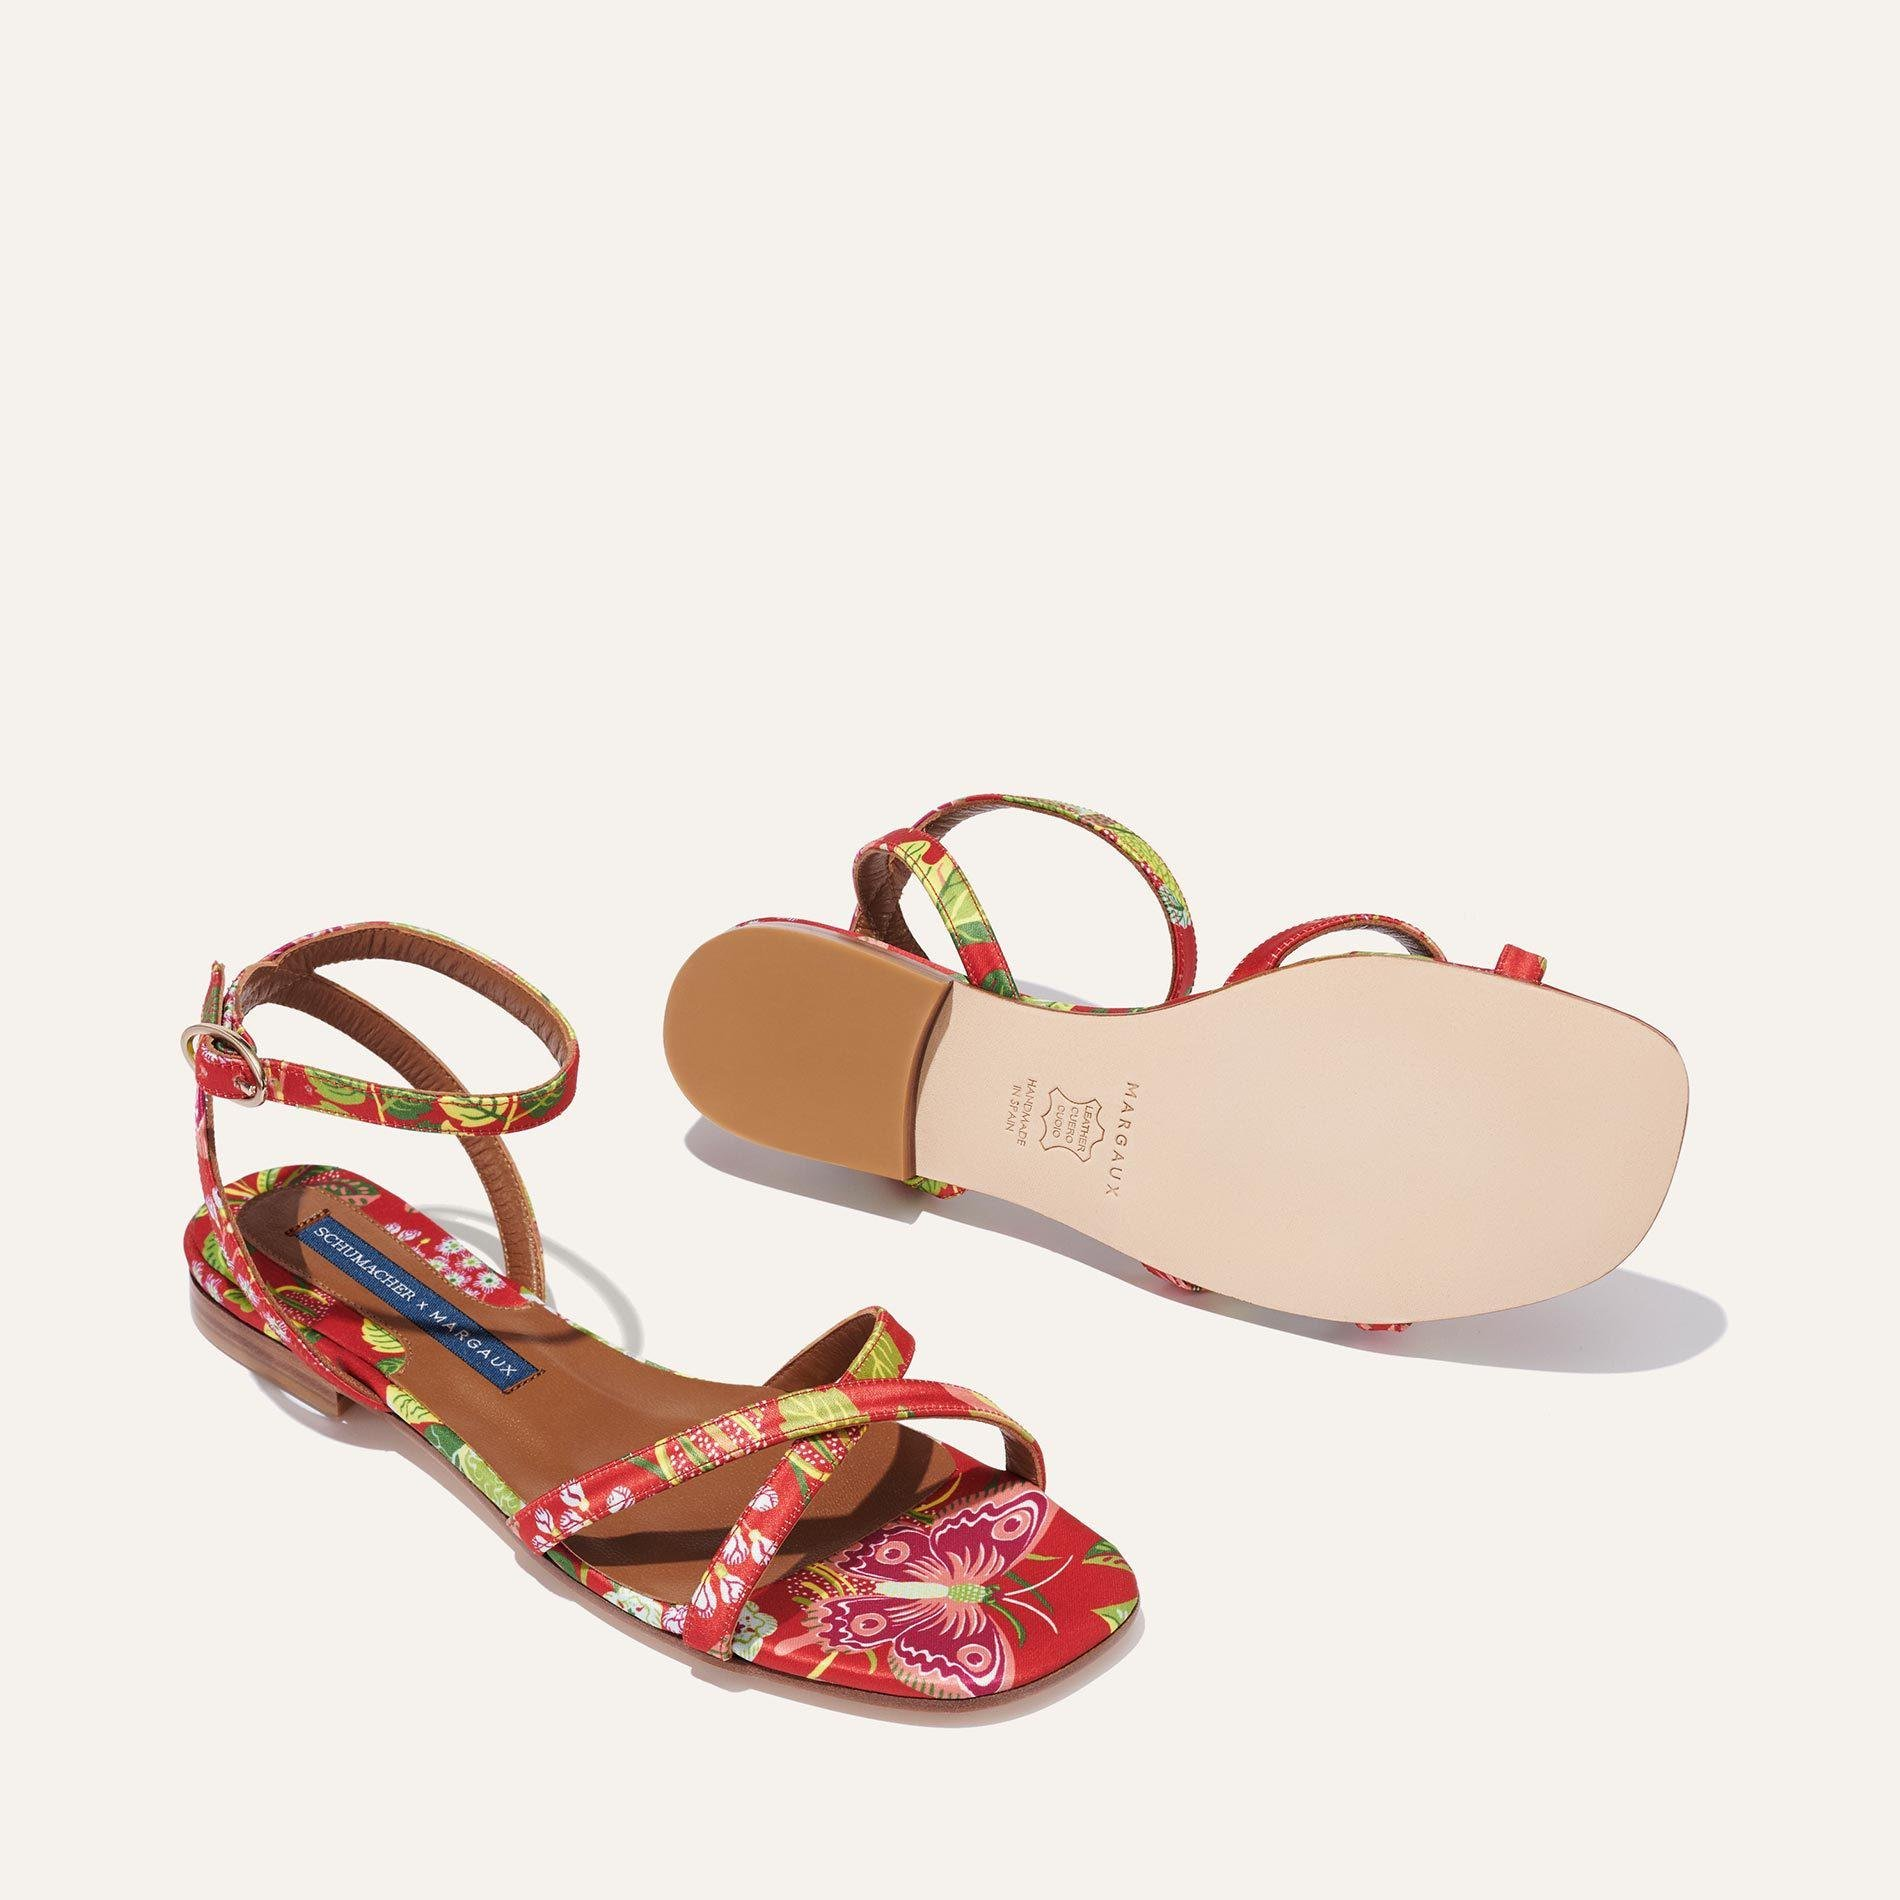 Schumacher x Margaux - The Flat Sandal in Exotic Butterfly 3